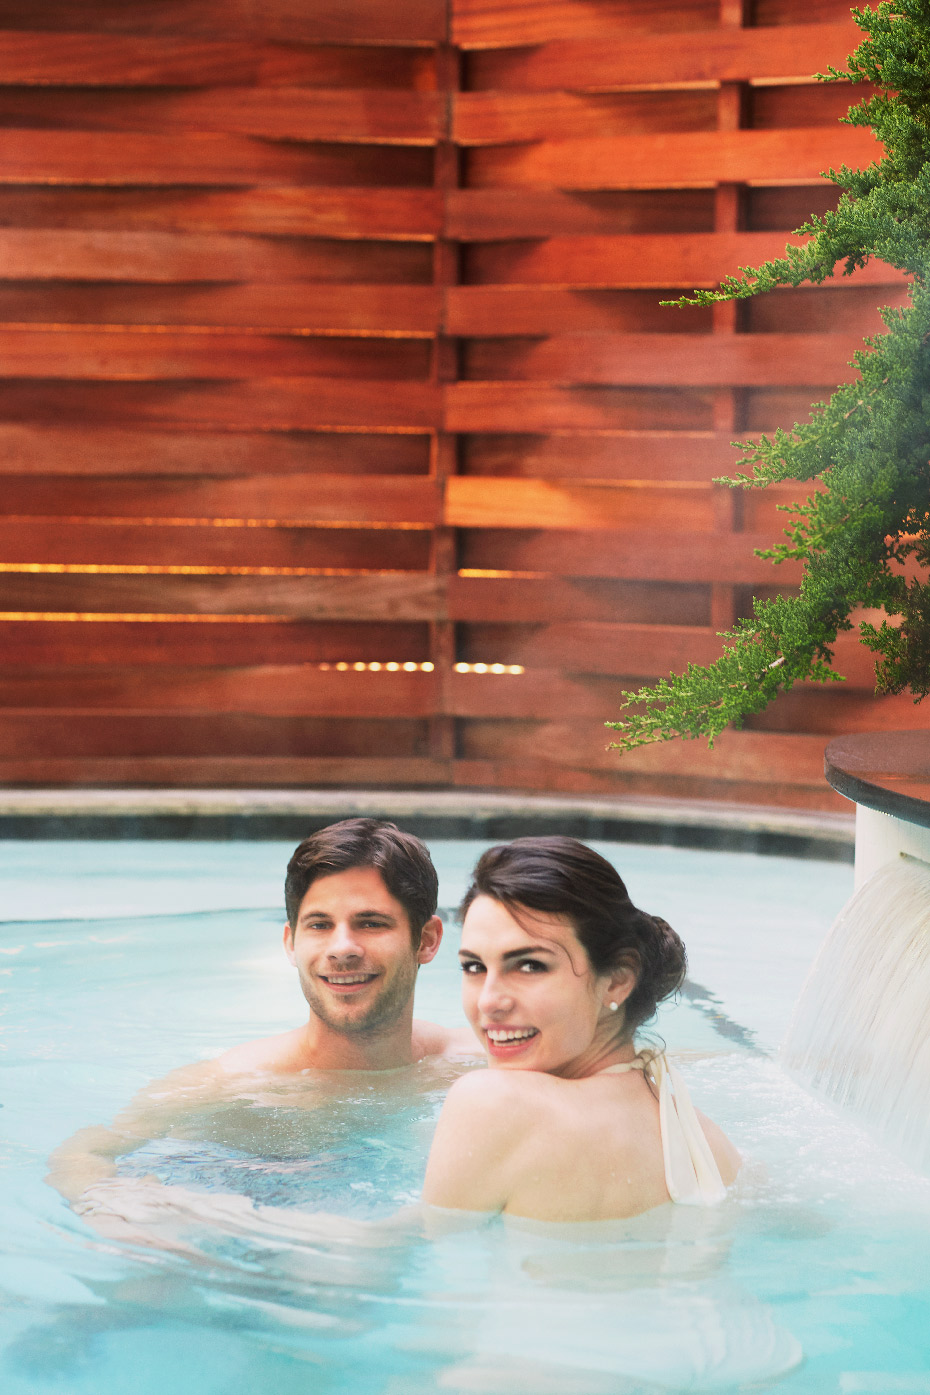 Stacey Van Berkel Photography I Young couple in spa pool I The Umstead Hotel and Spa I Cary, North Carolina